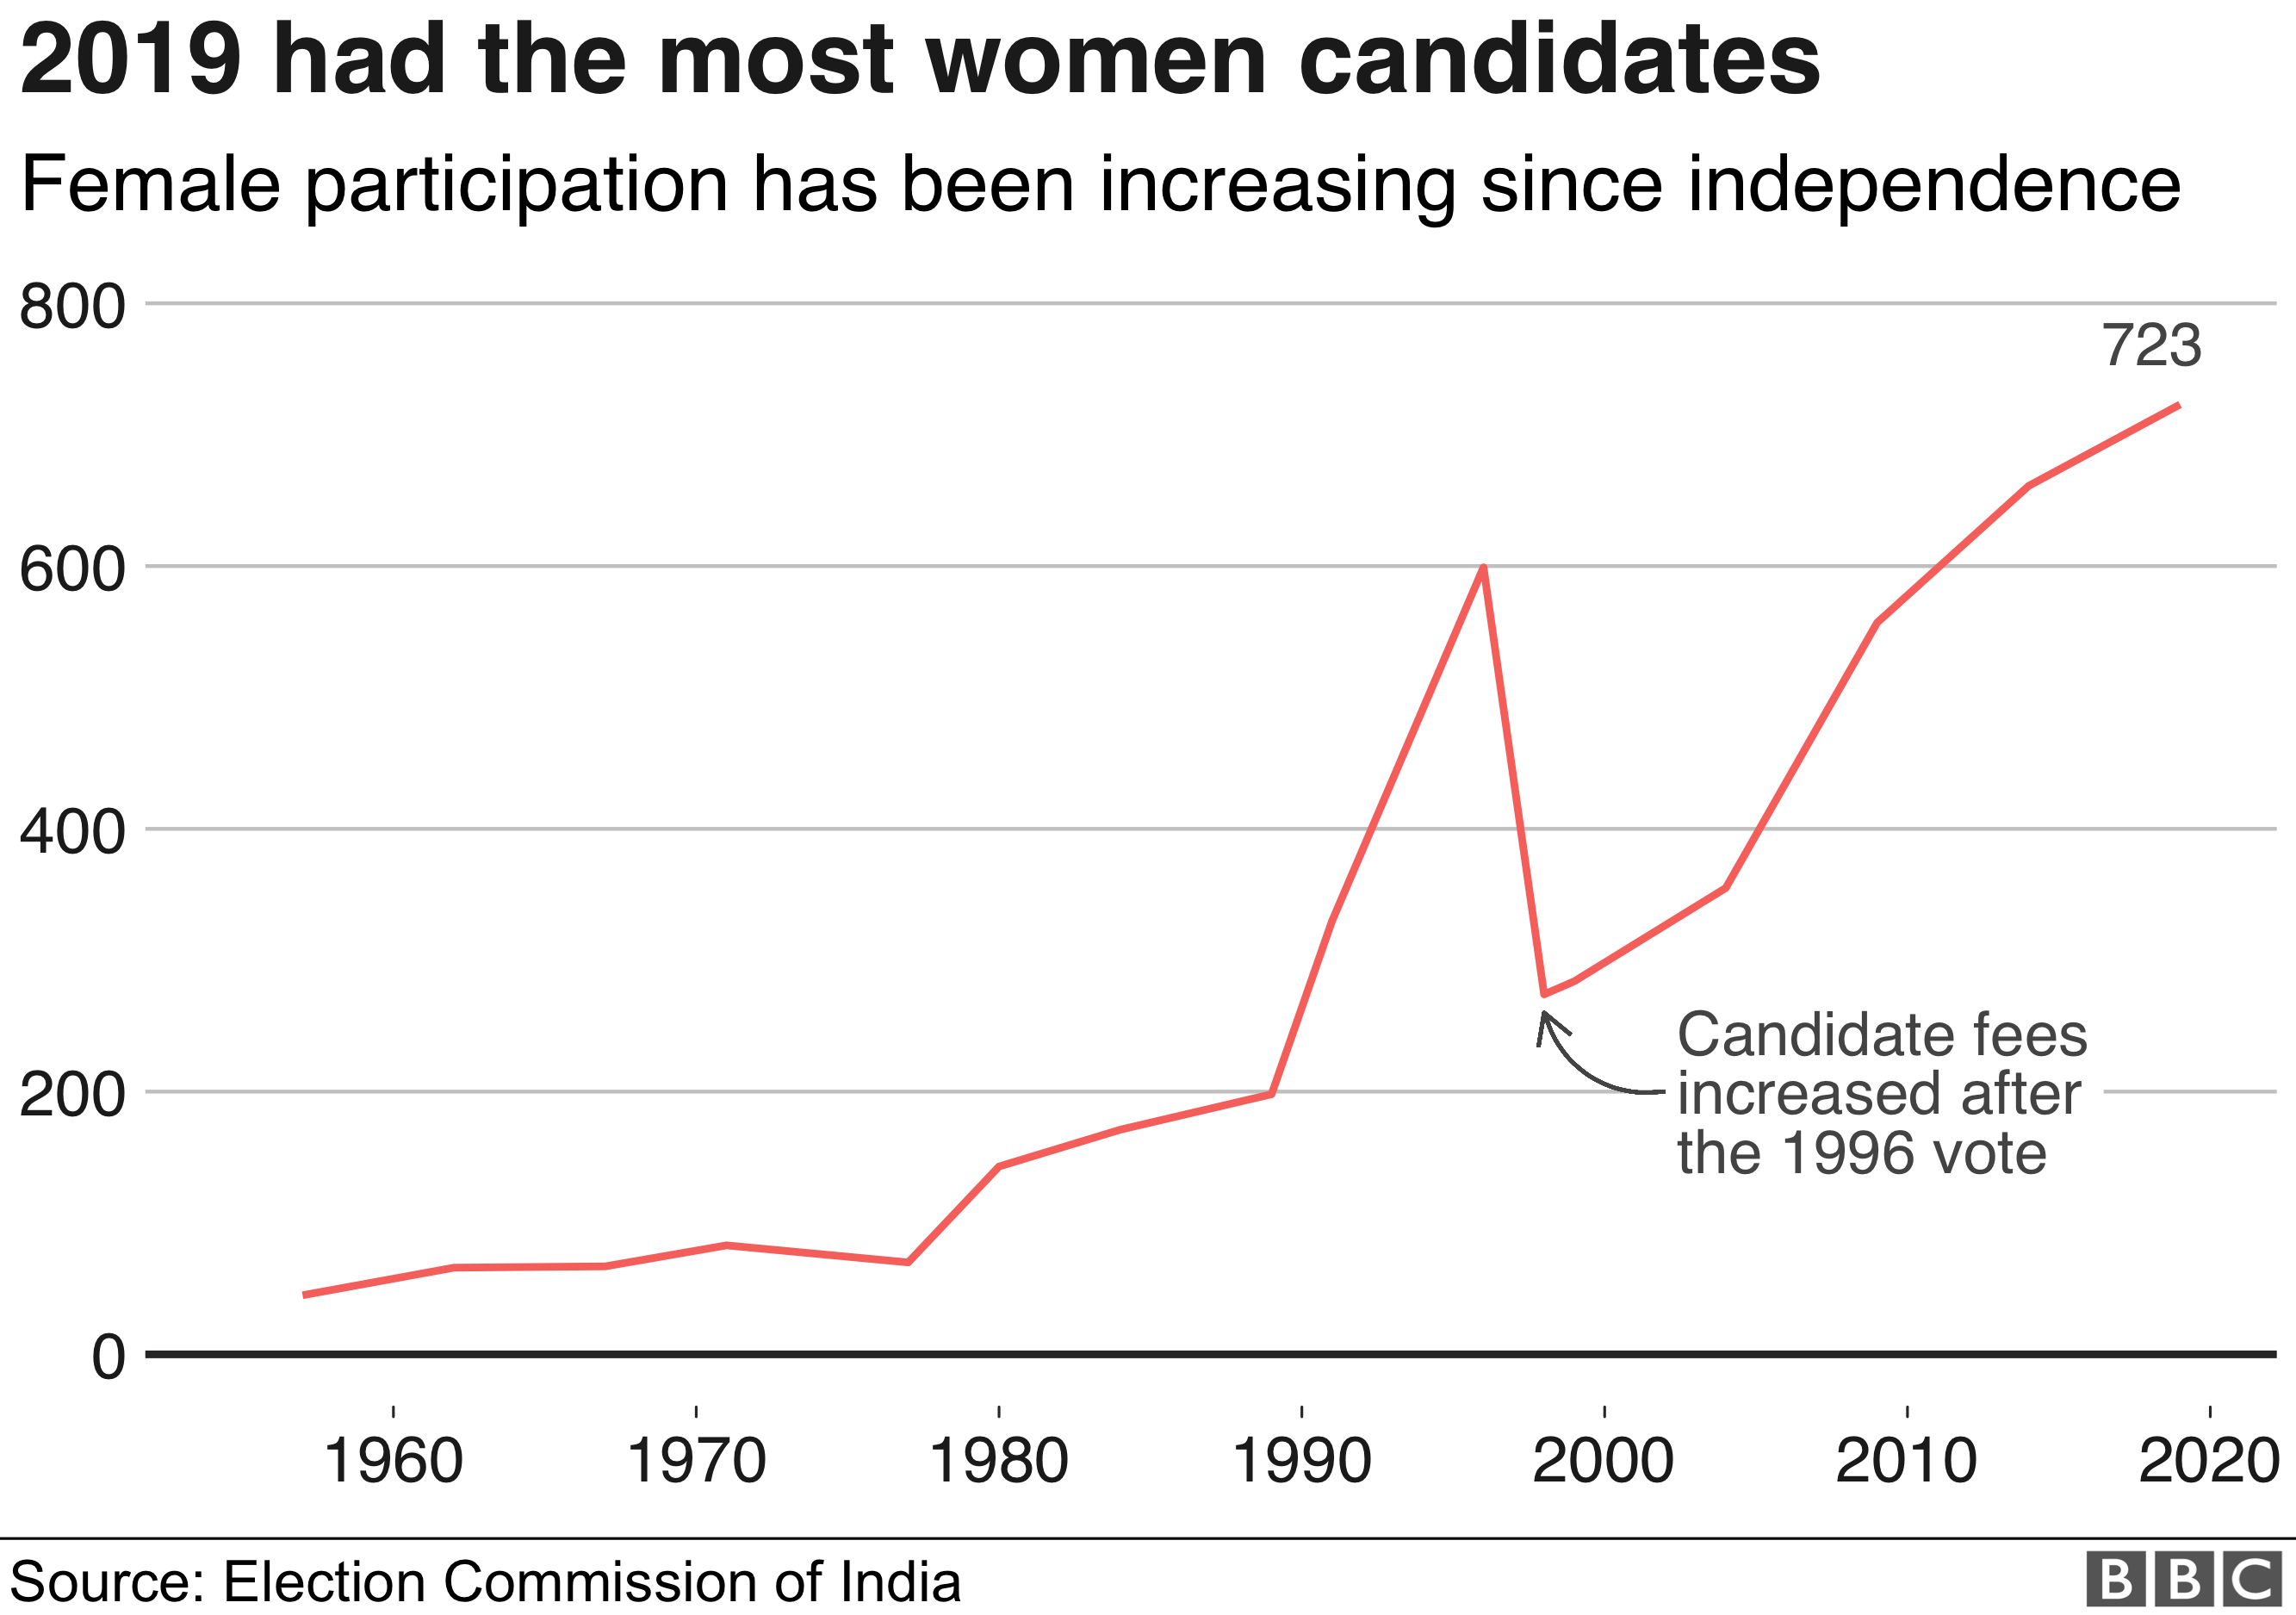 Female candidates over time